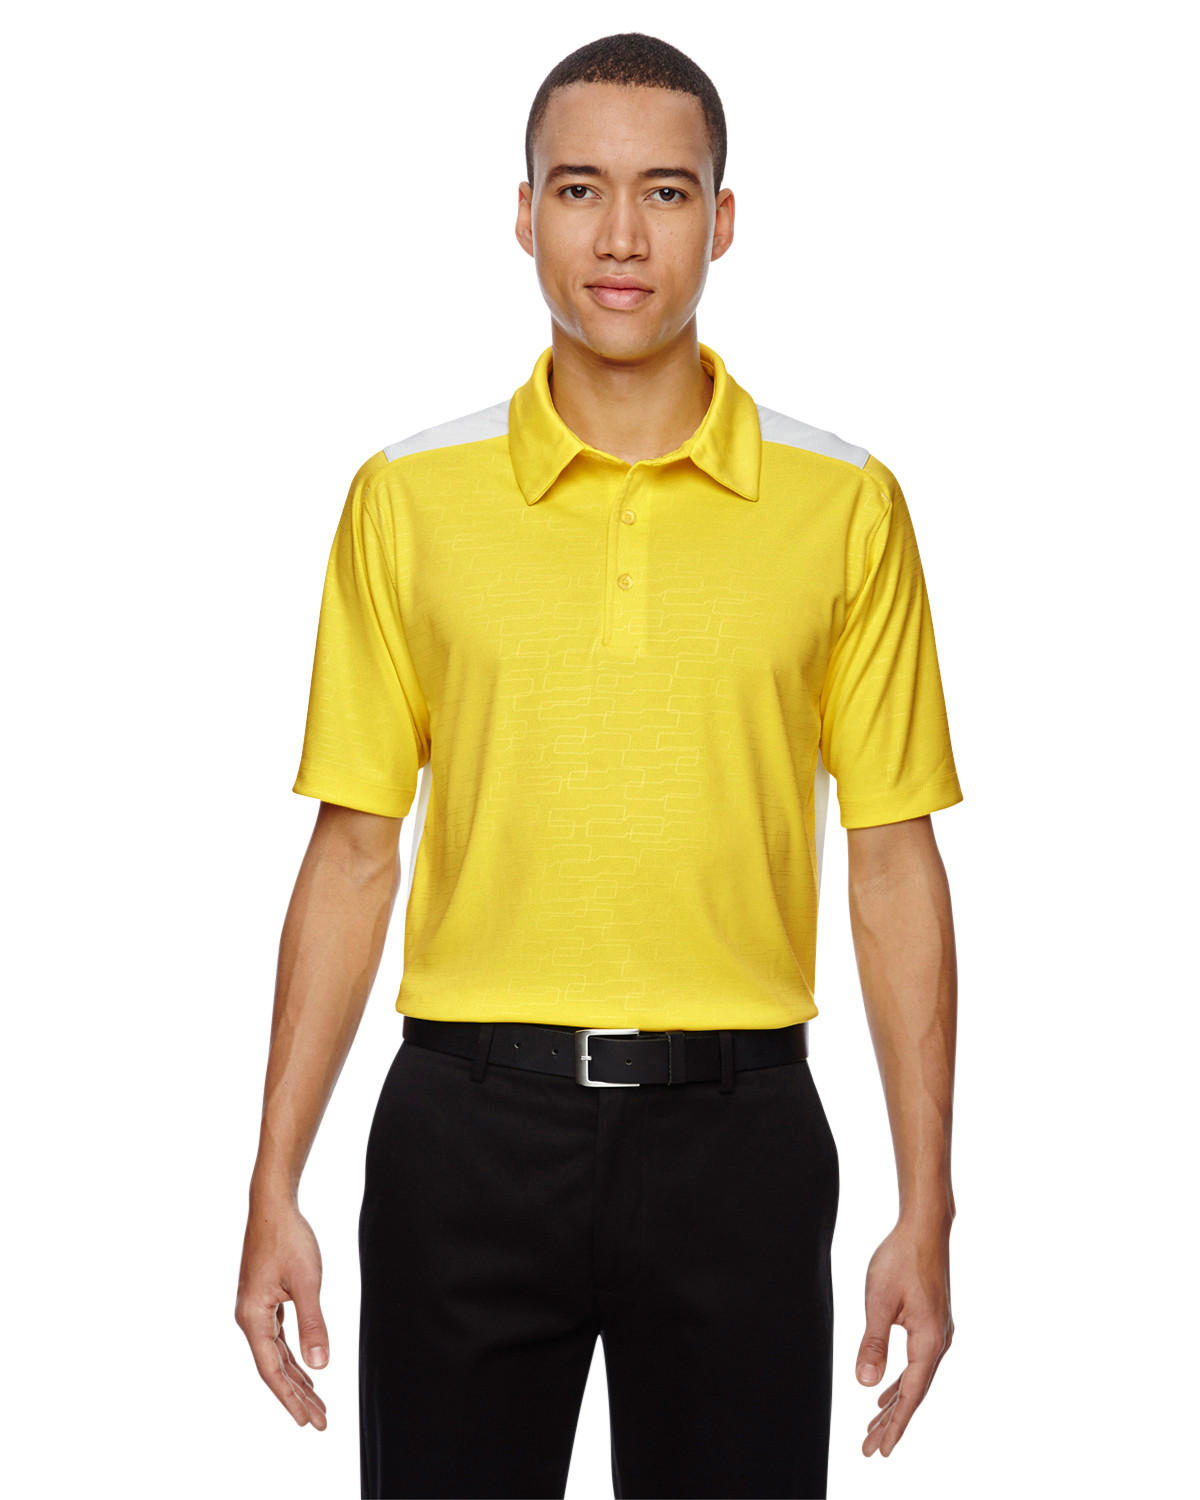 Men's Reflex UTK coollogik™ Performance Embossed Print Polo